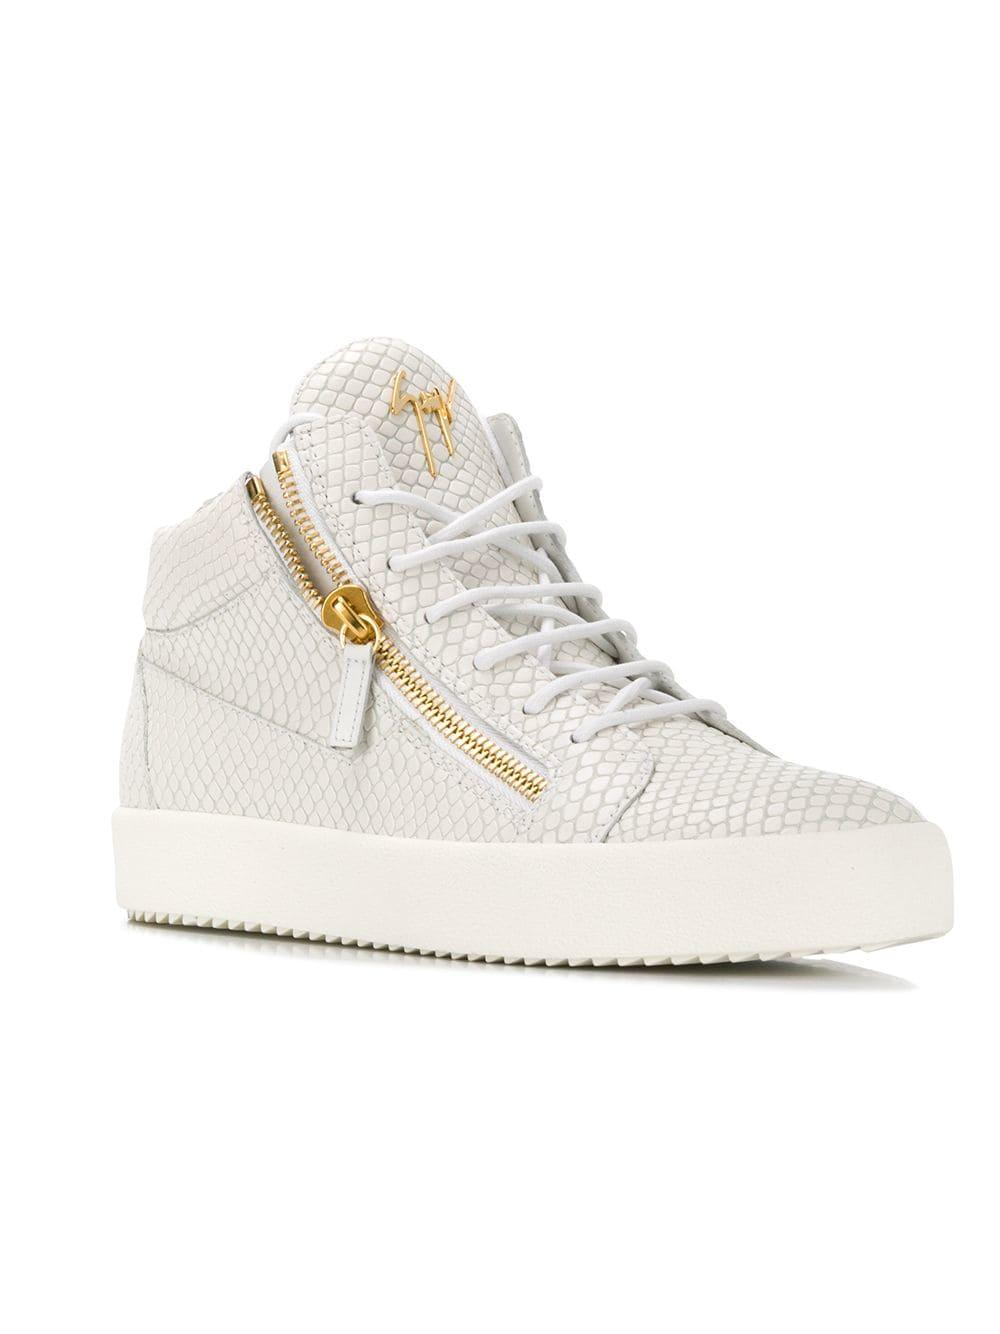 92273330be7a9 Lyst - Giuseppe Zanotti Kriss Hi-top Sneakers in White for Men